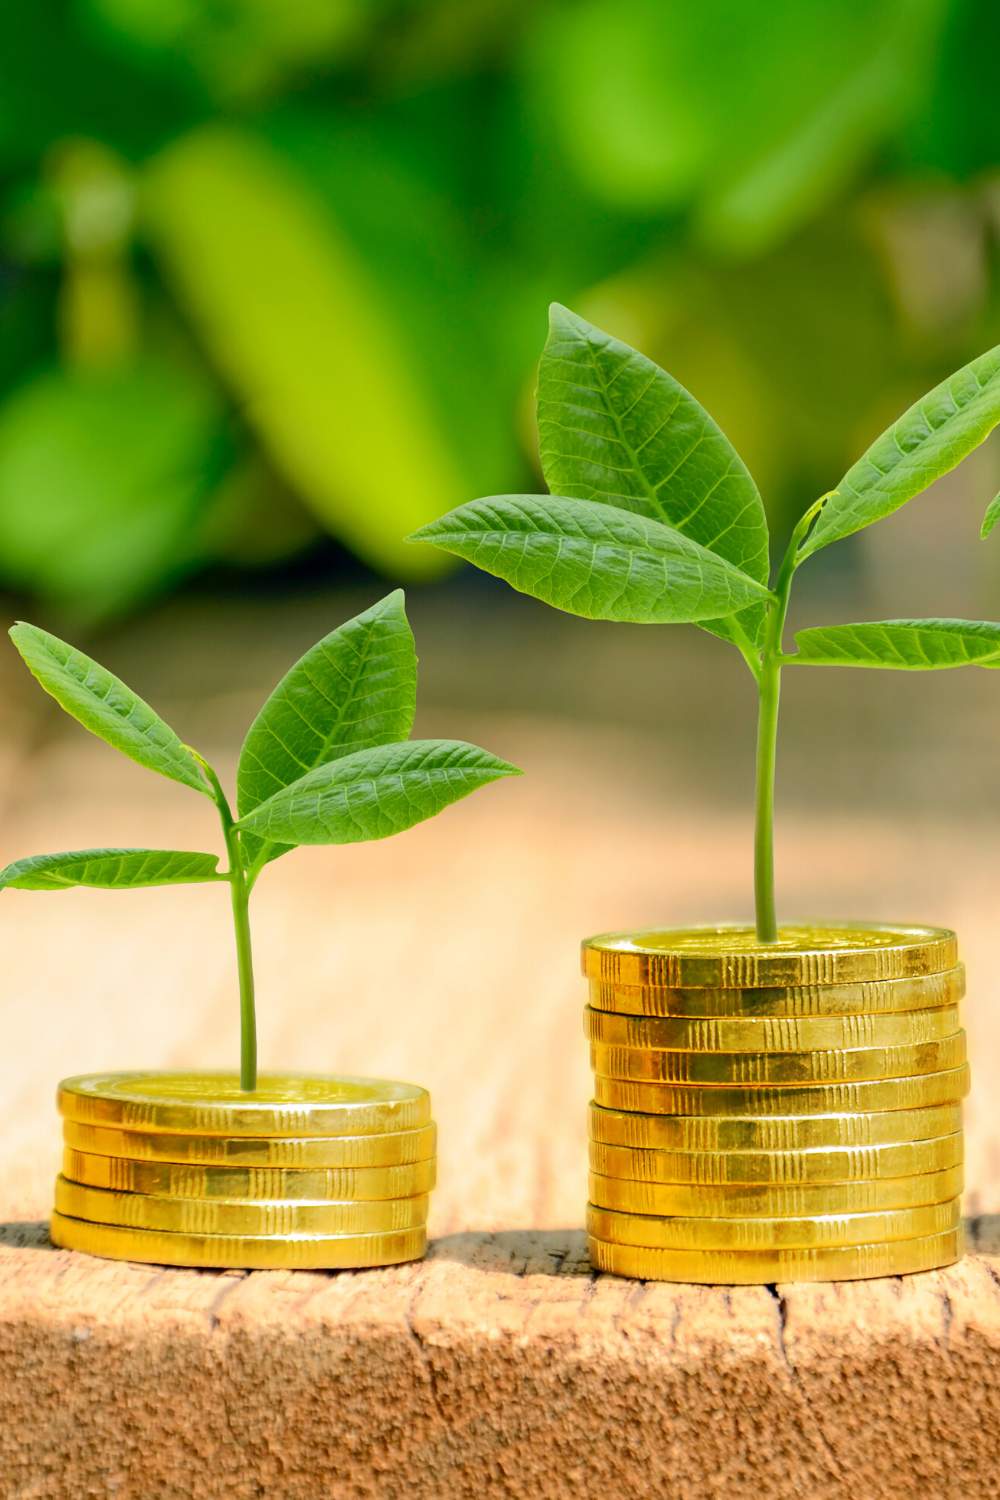 You Need to Invest Smartly: 7 Rules Investors Follow